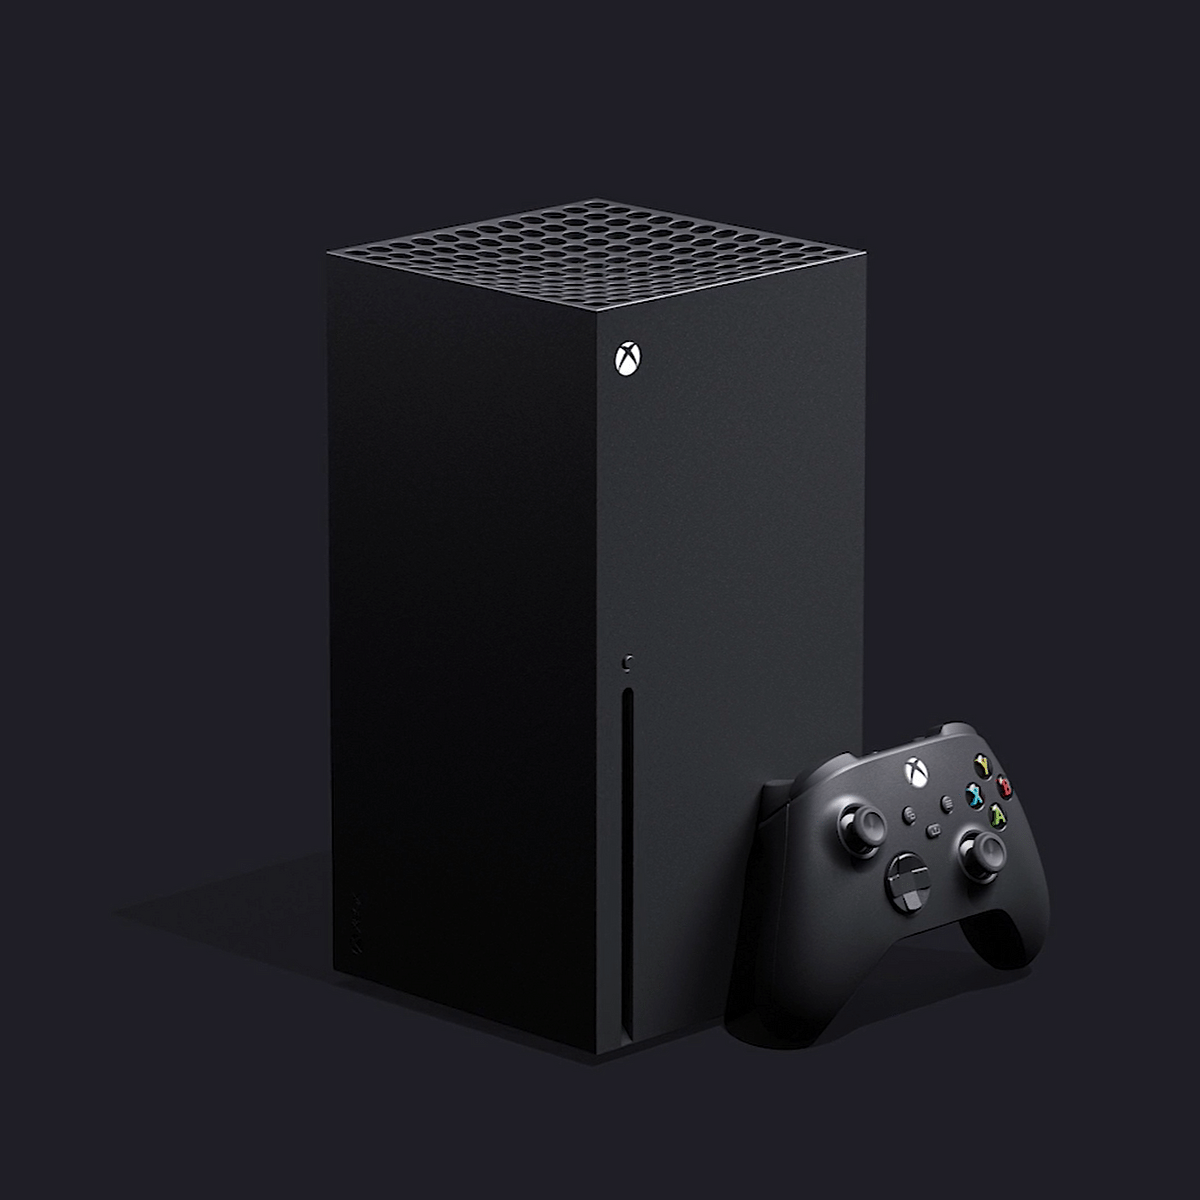 Good news for gamers! Microsoft's Xbox Series X set to launch in November